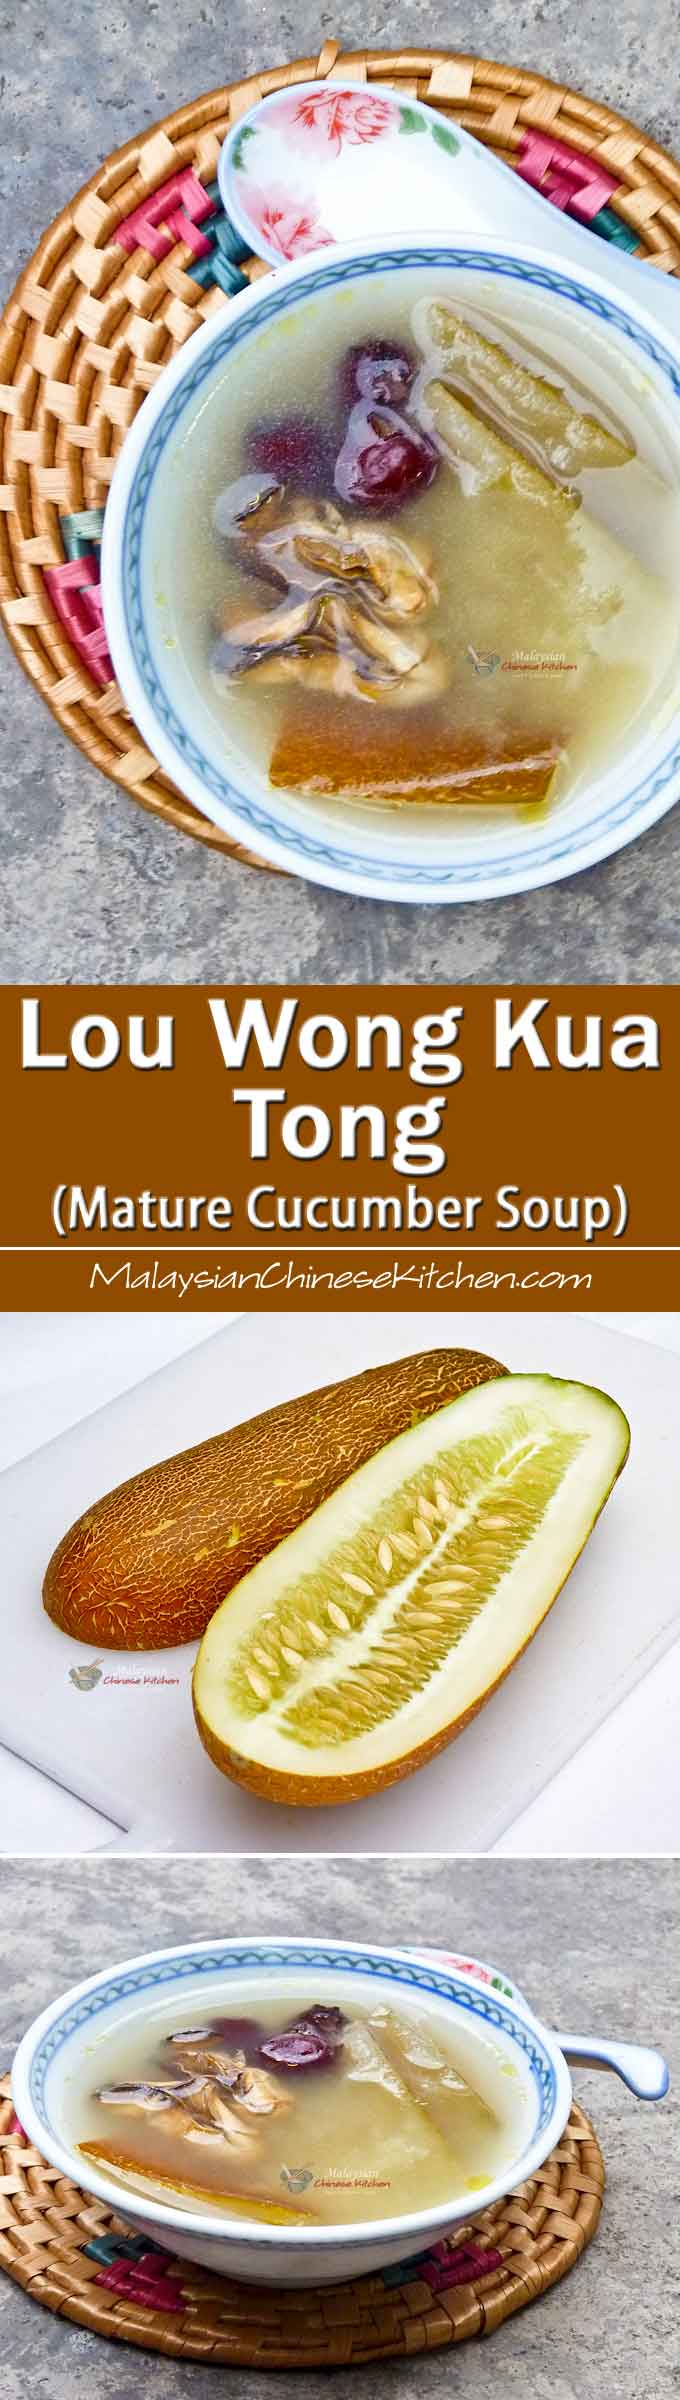 Lou Wong Kua Tong (Mature Cucumber Soup) - an easy to prepare nutritious soup. It is clear, soothing, and a perfect accompaniment to your rice meal. | MalaysianChineseKitchen.com